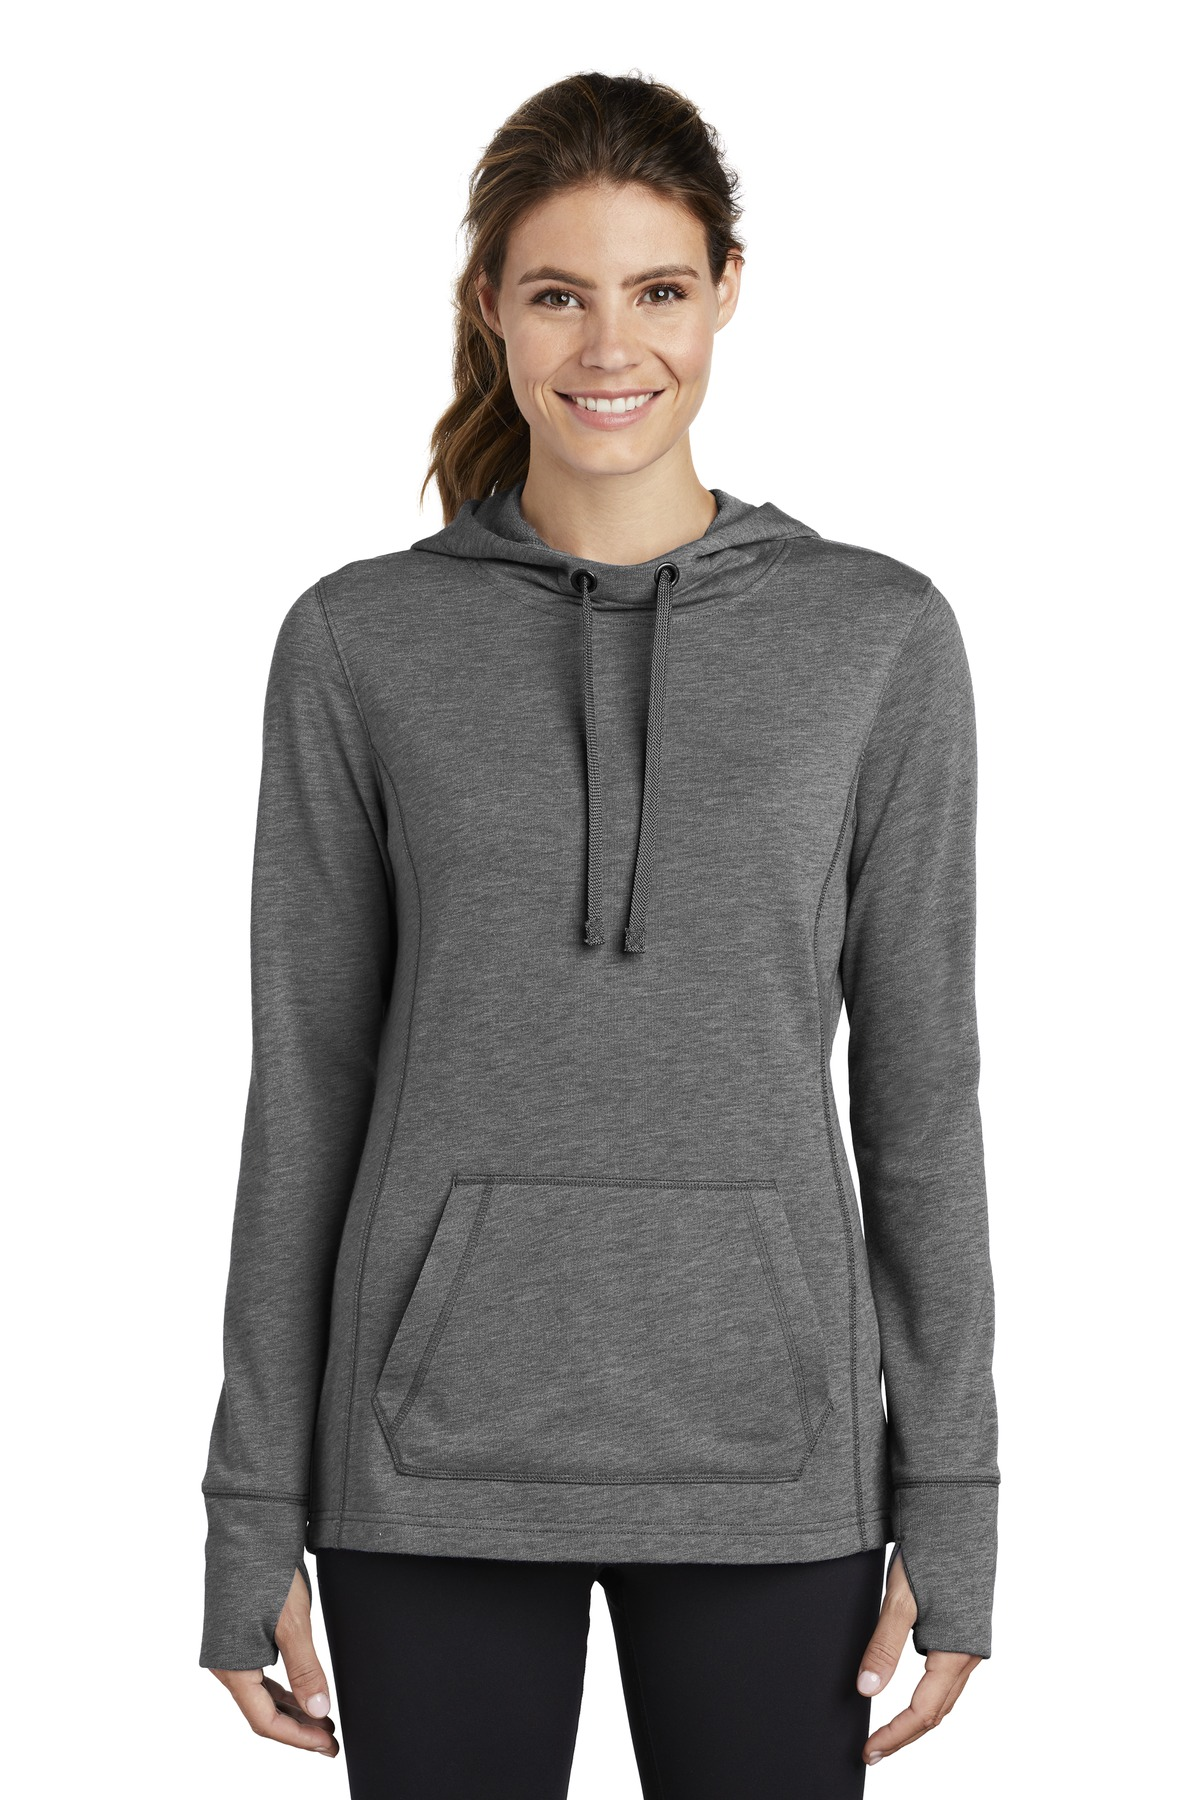 Sport-Tek  ®  Ladies PosiCharge  ®  Tri-Blend Wicking Fleece Hooded Pullover. LST296 - Dark Grey Heather